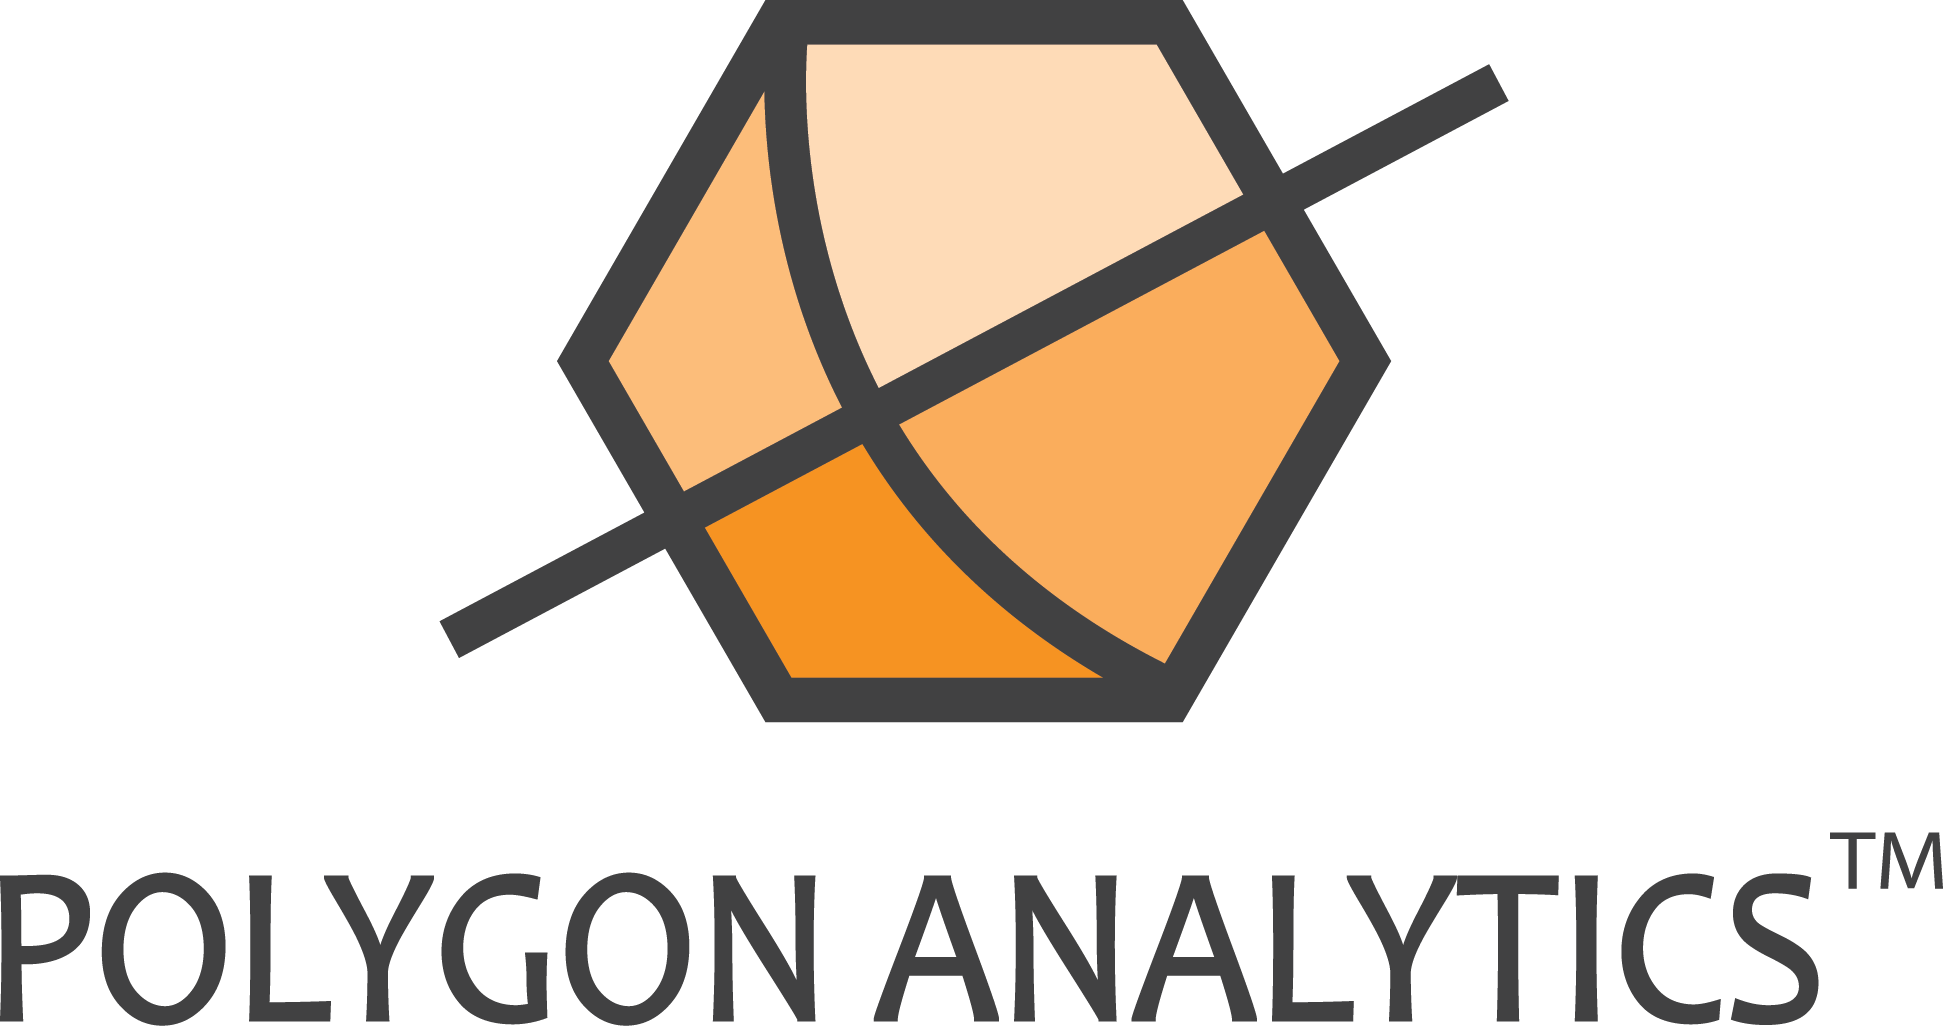 Polygon Analytics